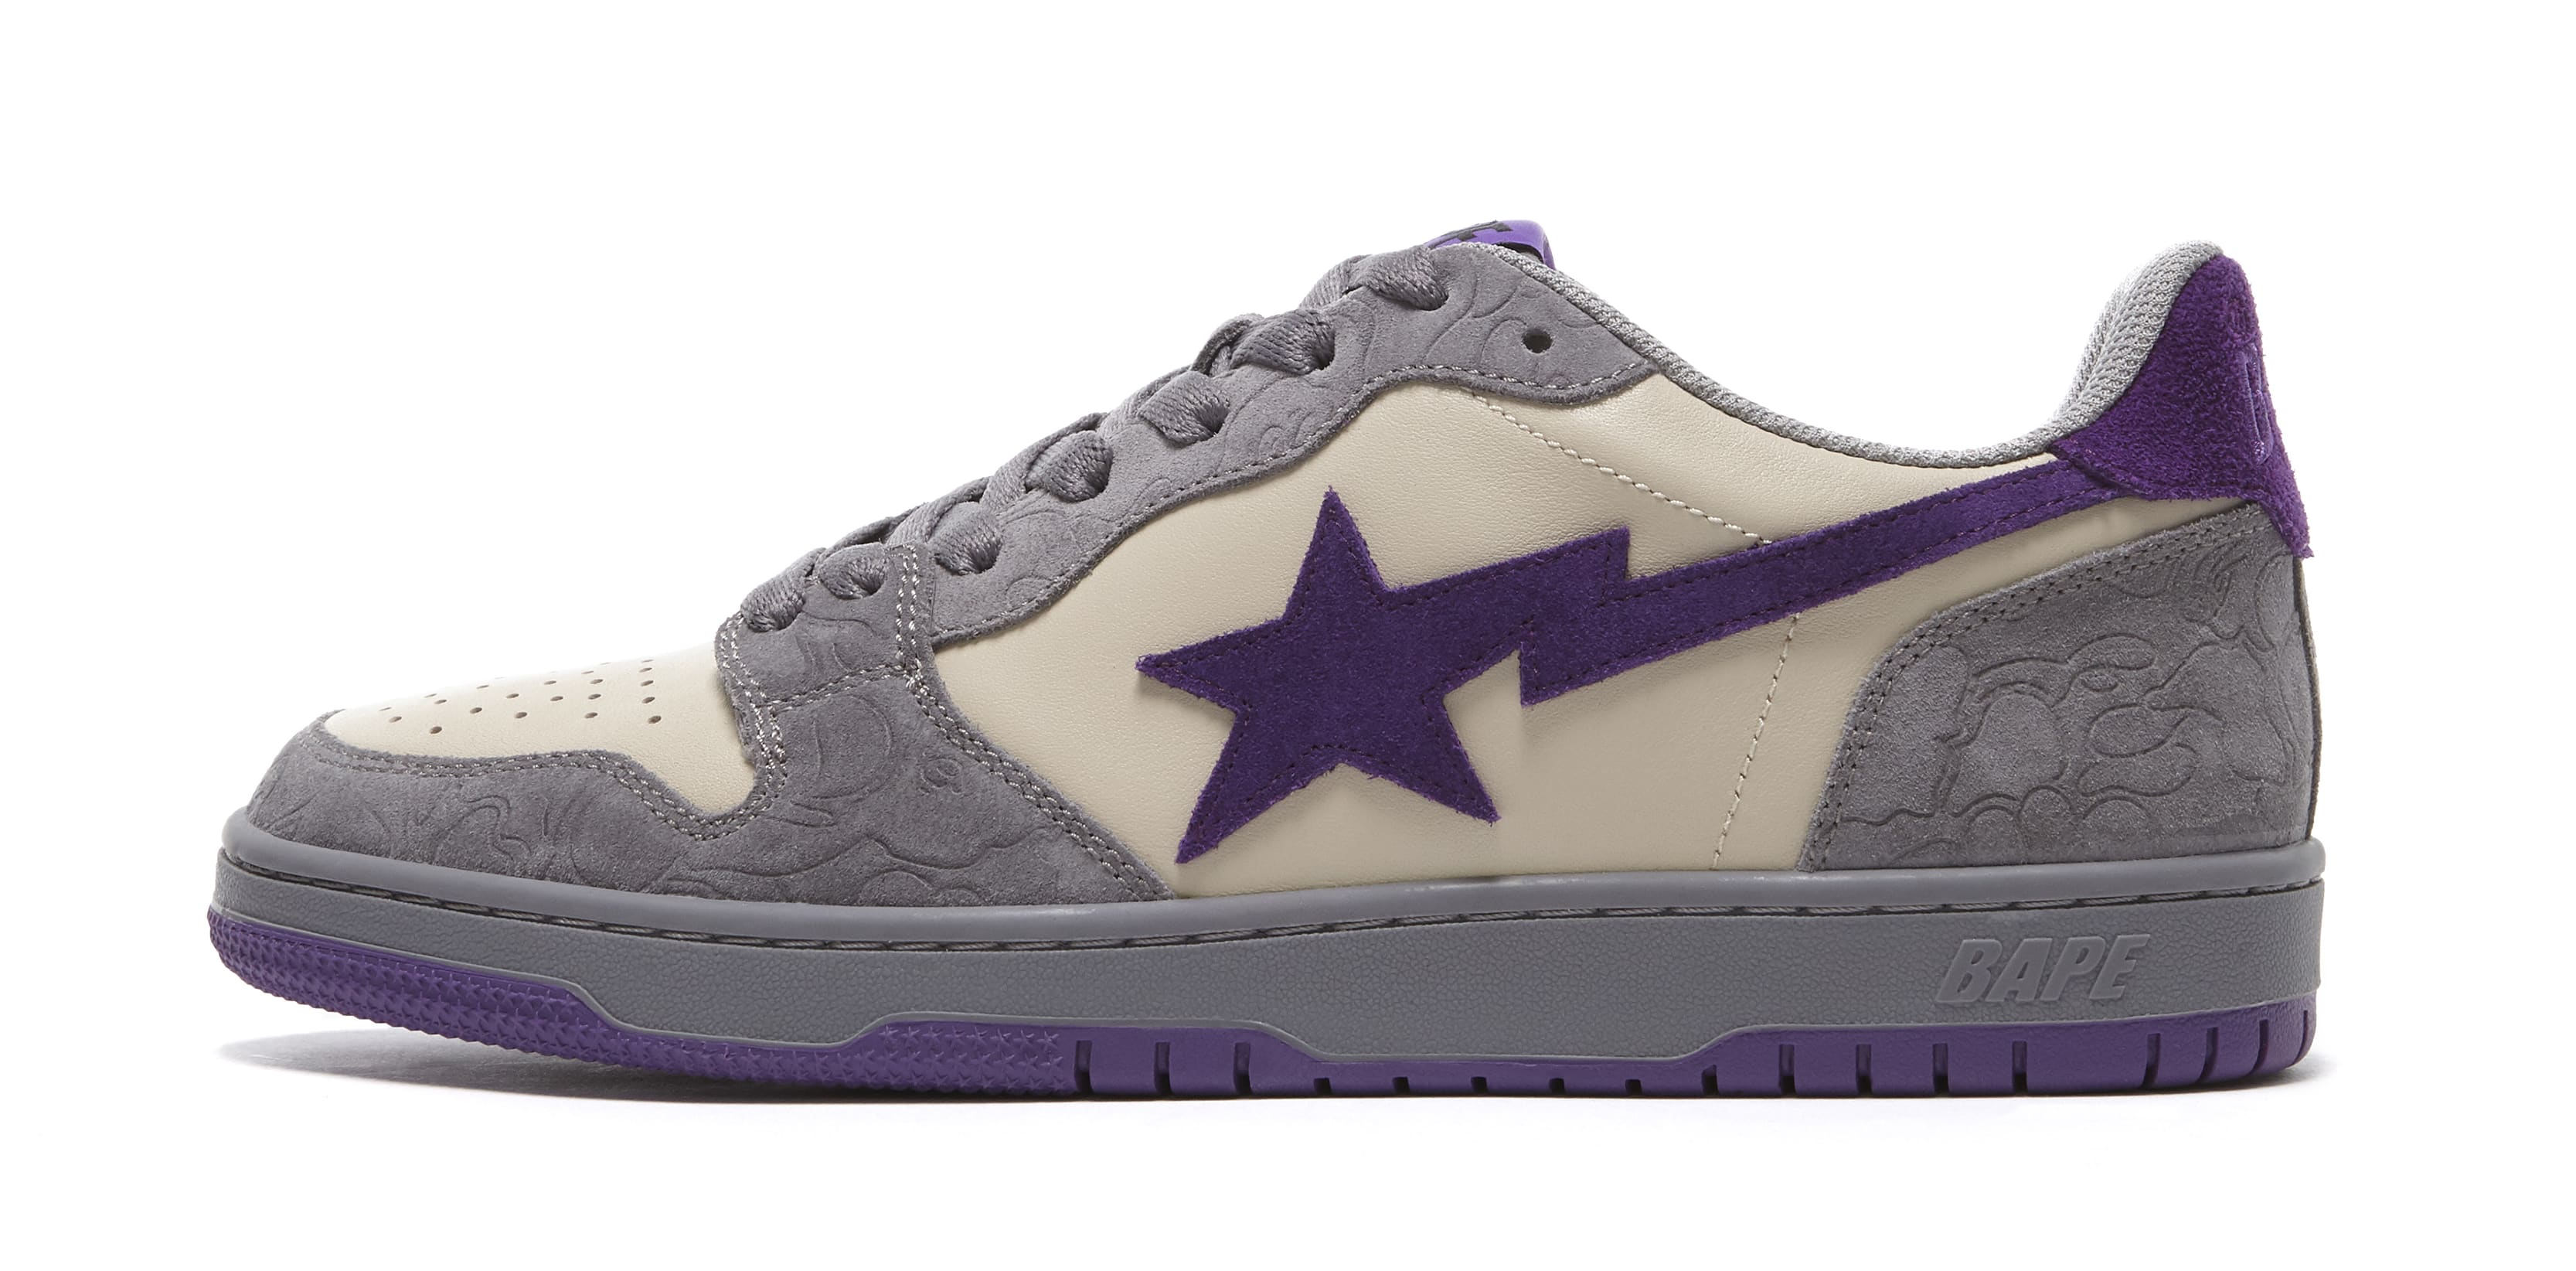 Bape Court Sta Mist Grey and Royal Purple Lateral